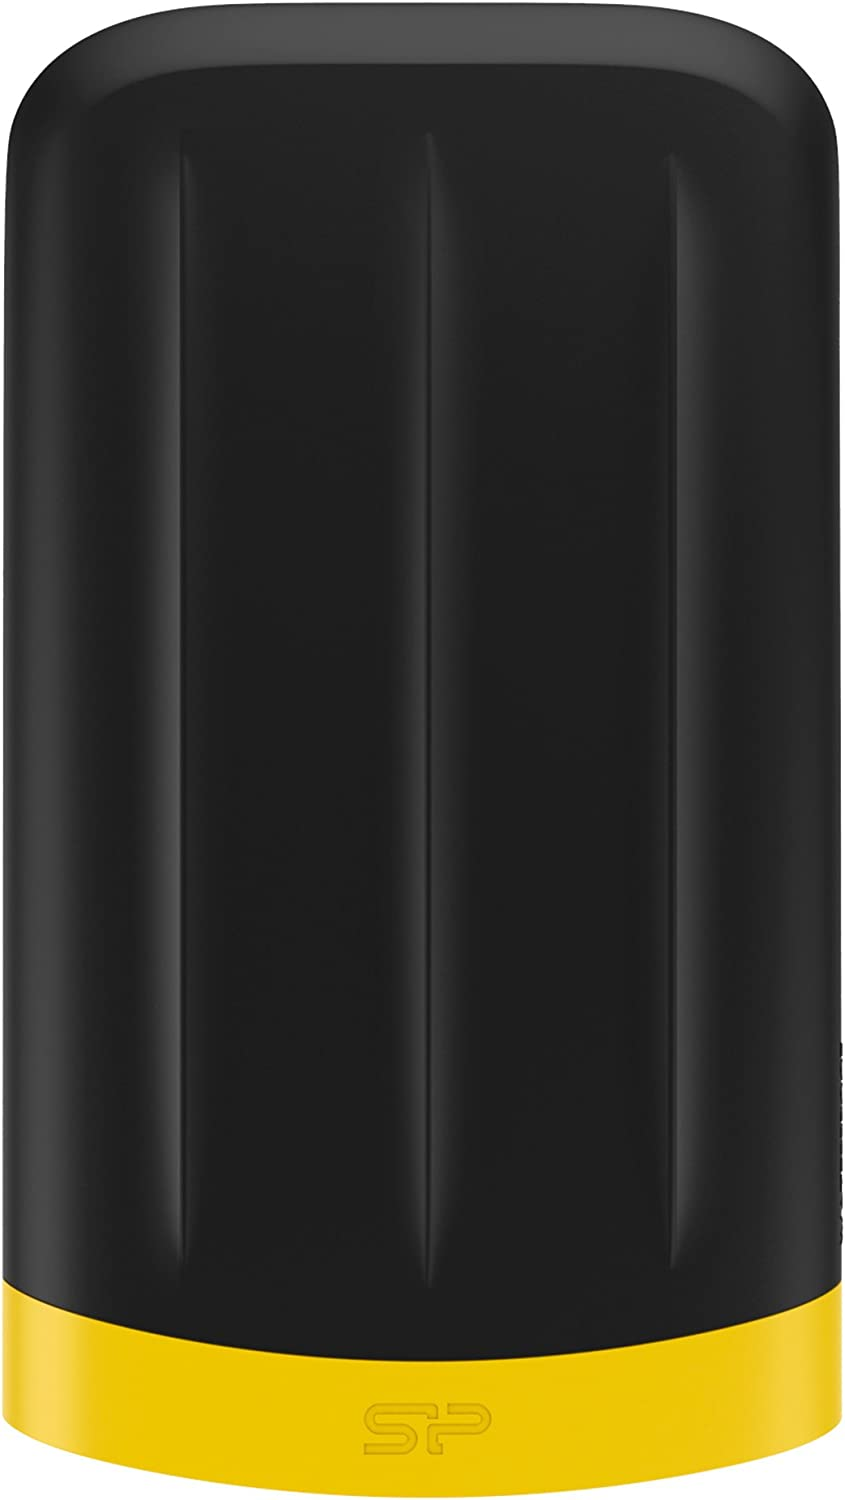 Silicon Power 1TB Rugged Armor A65 IP67 Shockproof/Waterproof USB 3.0 2.5-inch Military Grade Portable External Hard Drive for PC, Mac, Xbox One and Xbox 360, Black